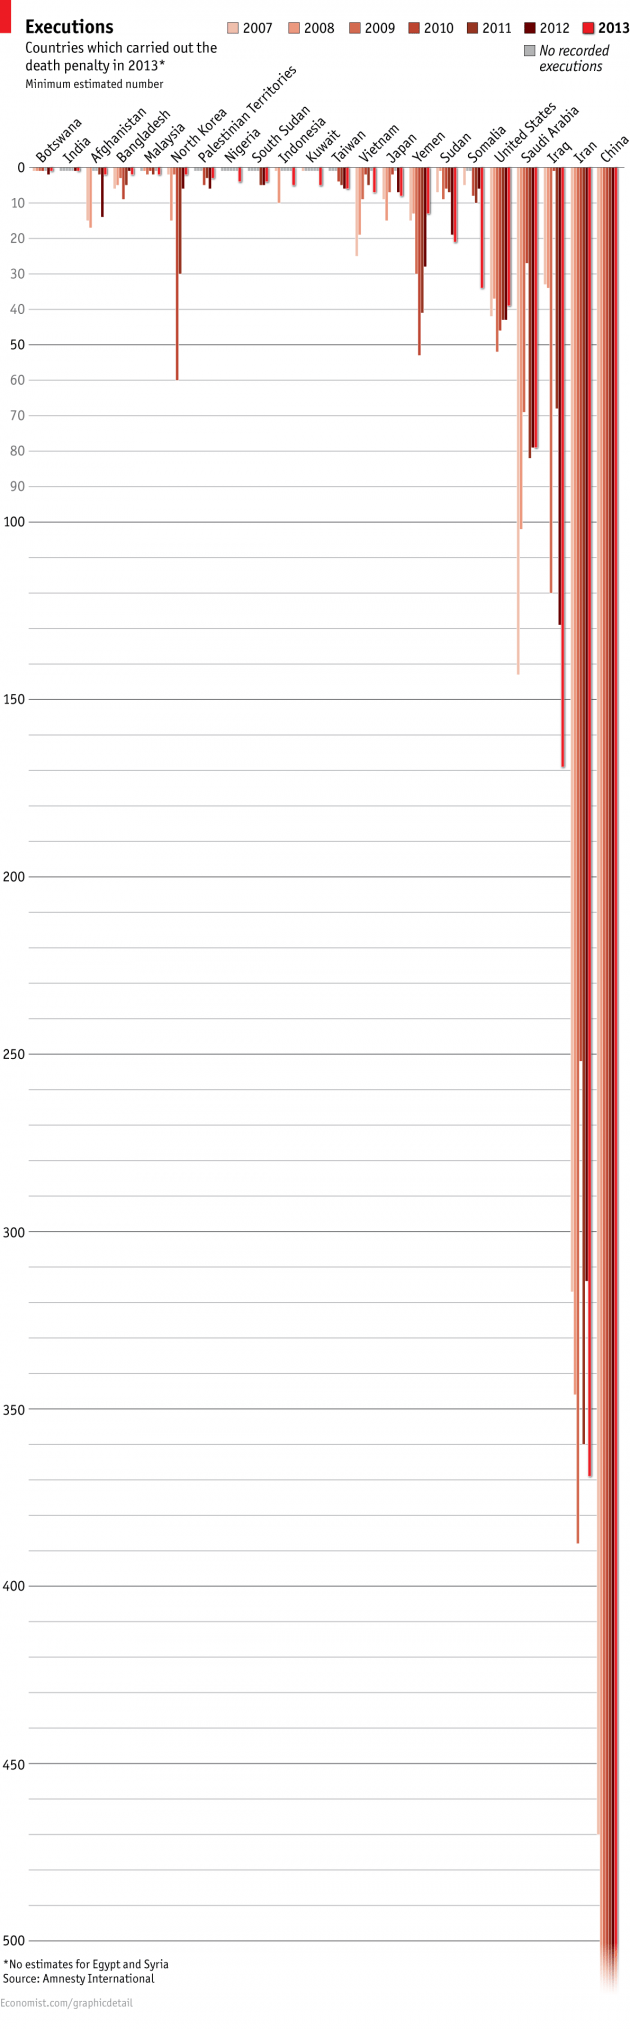 Countries which carried out the death penalty in 2013